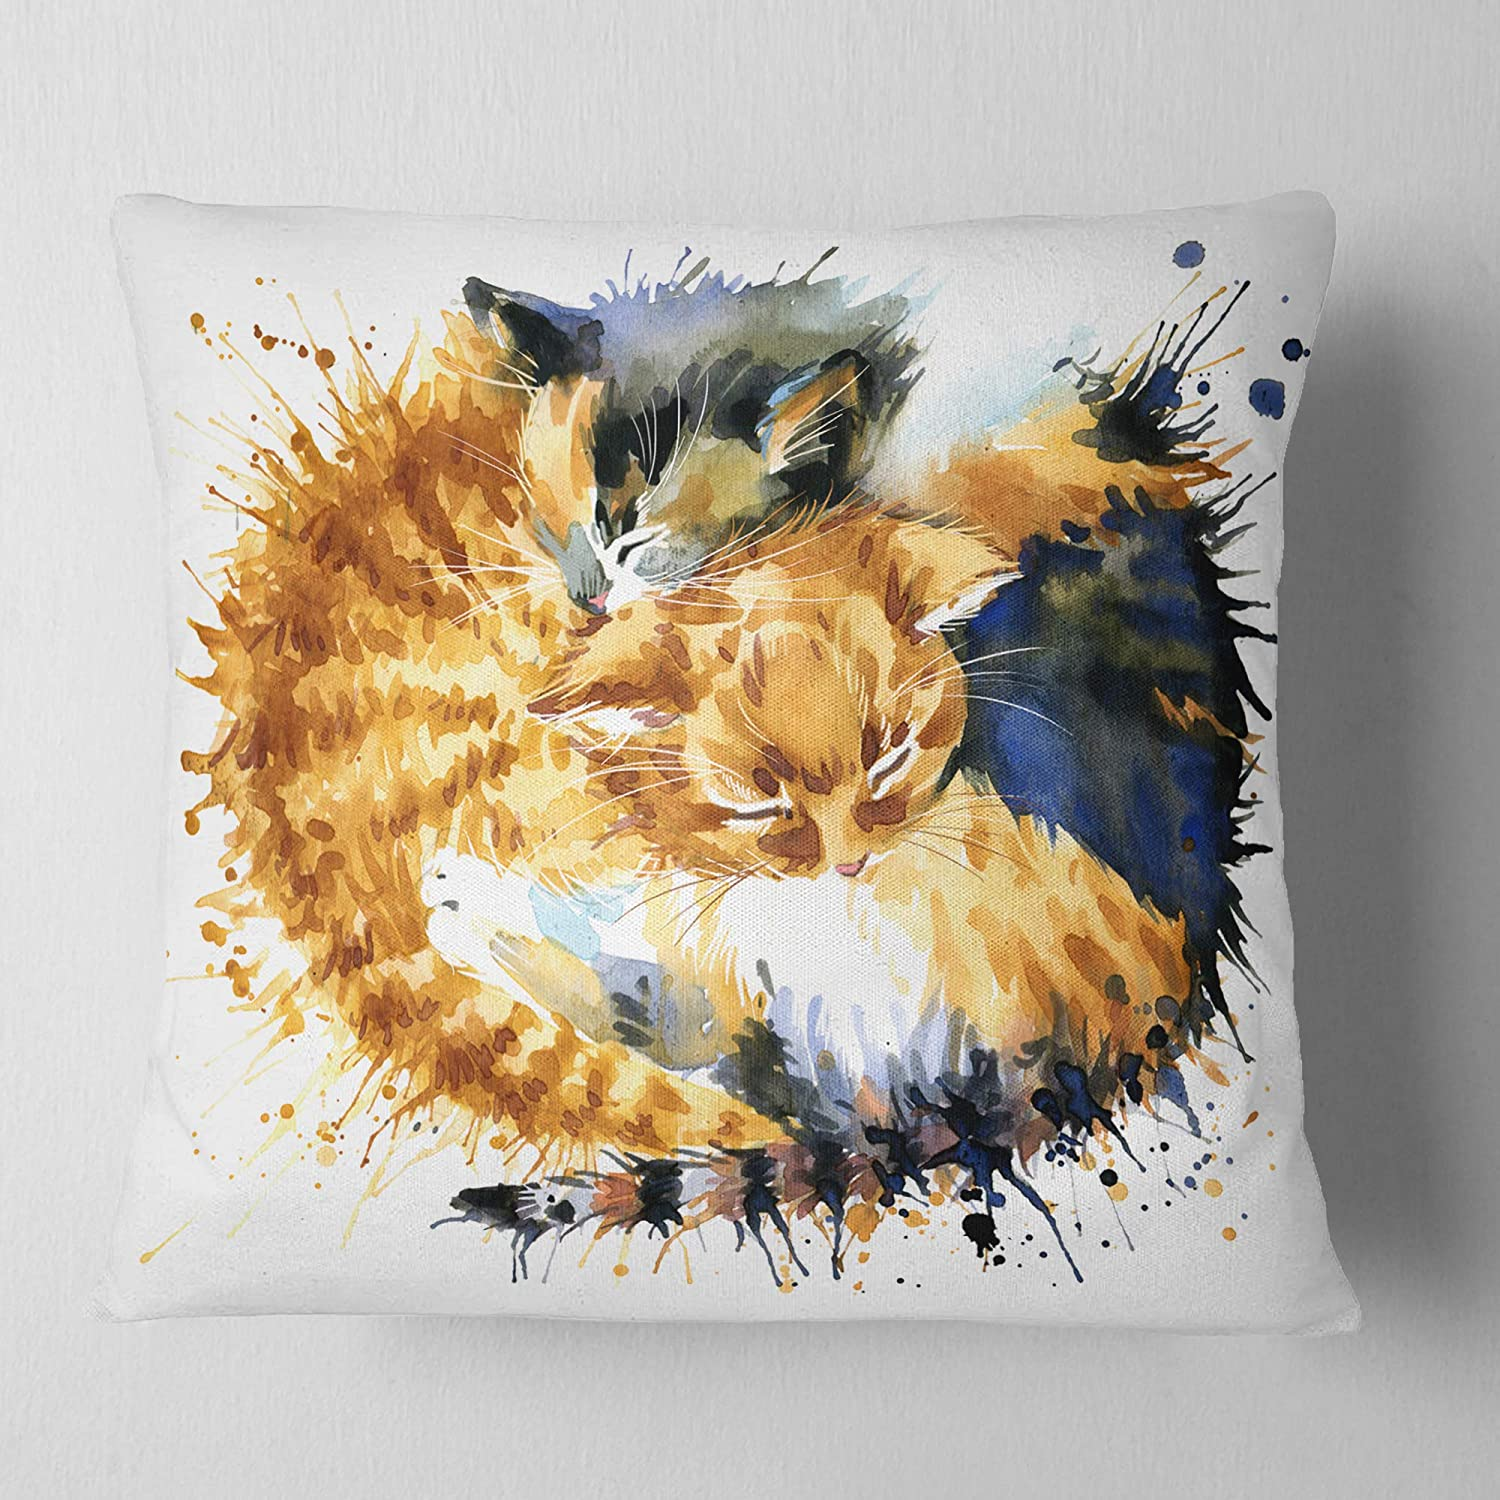 Designart CU13357-26-26 Cute Kitten Graphical Illustration Animal Cushion Cover for Living Room Insert Printed On Both Side x 26 in Sofa Throw Pillow 26 in in